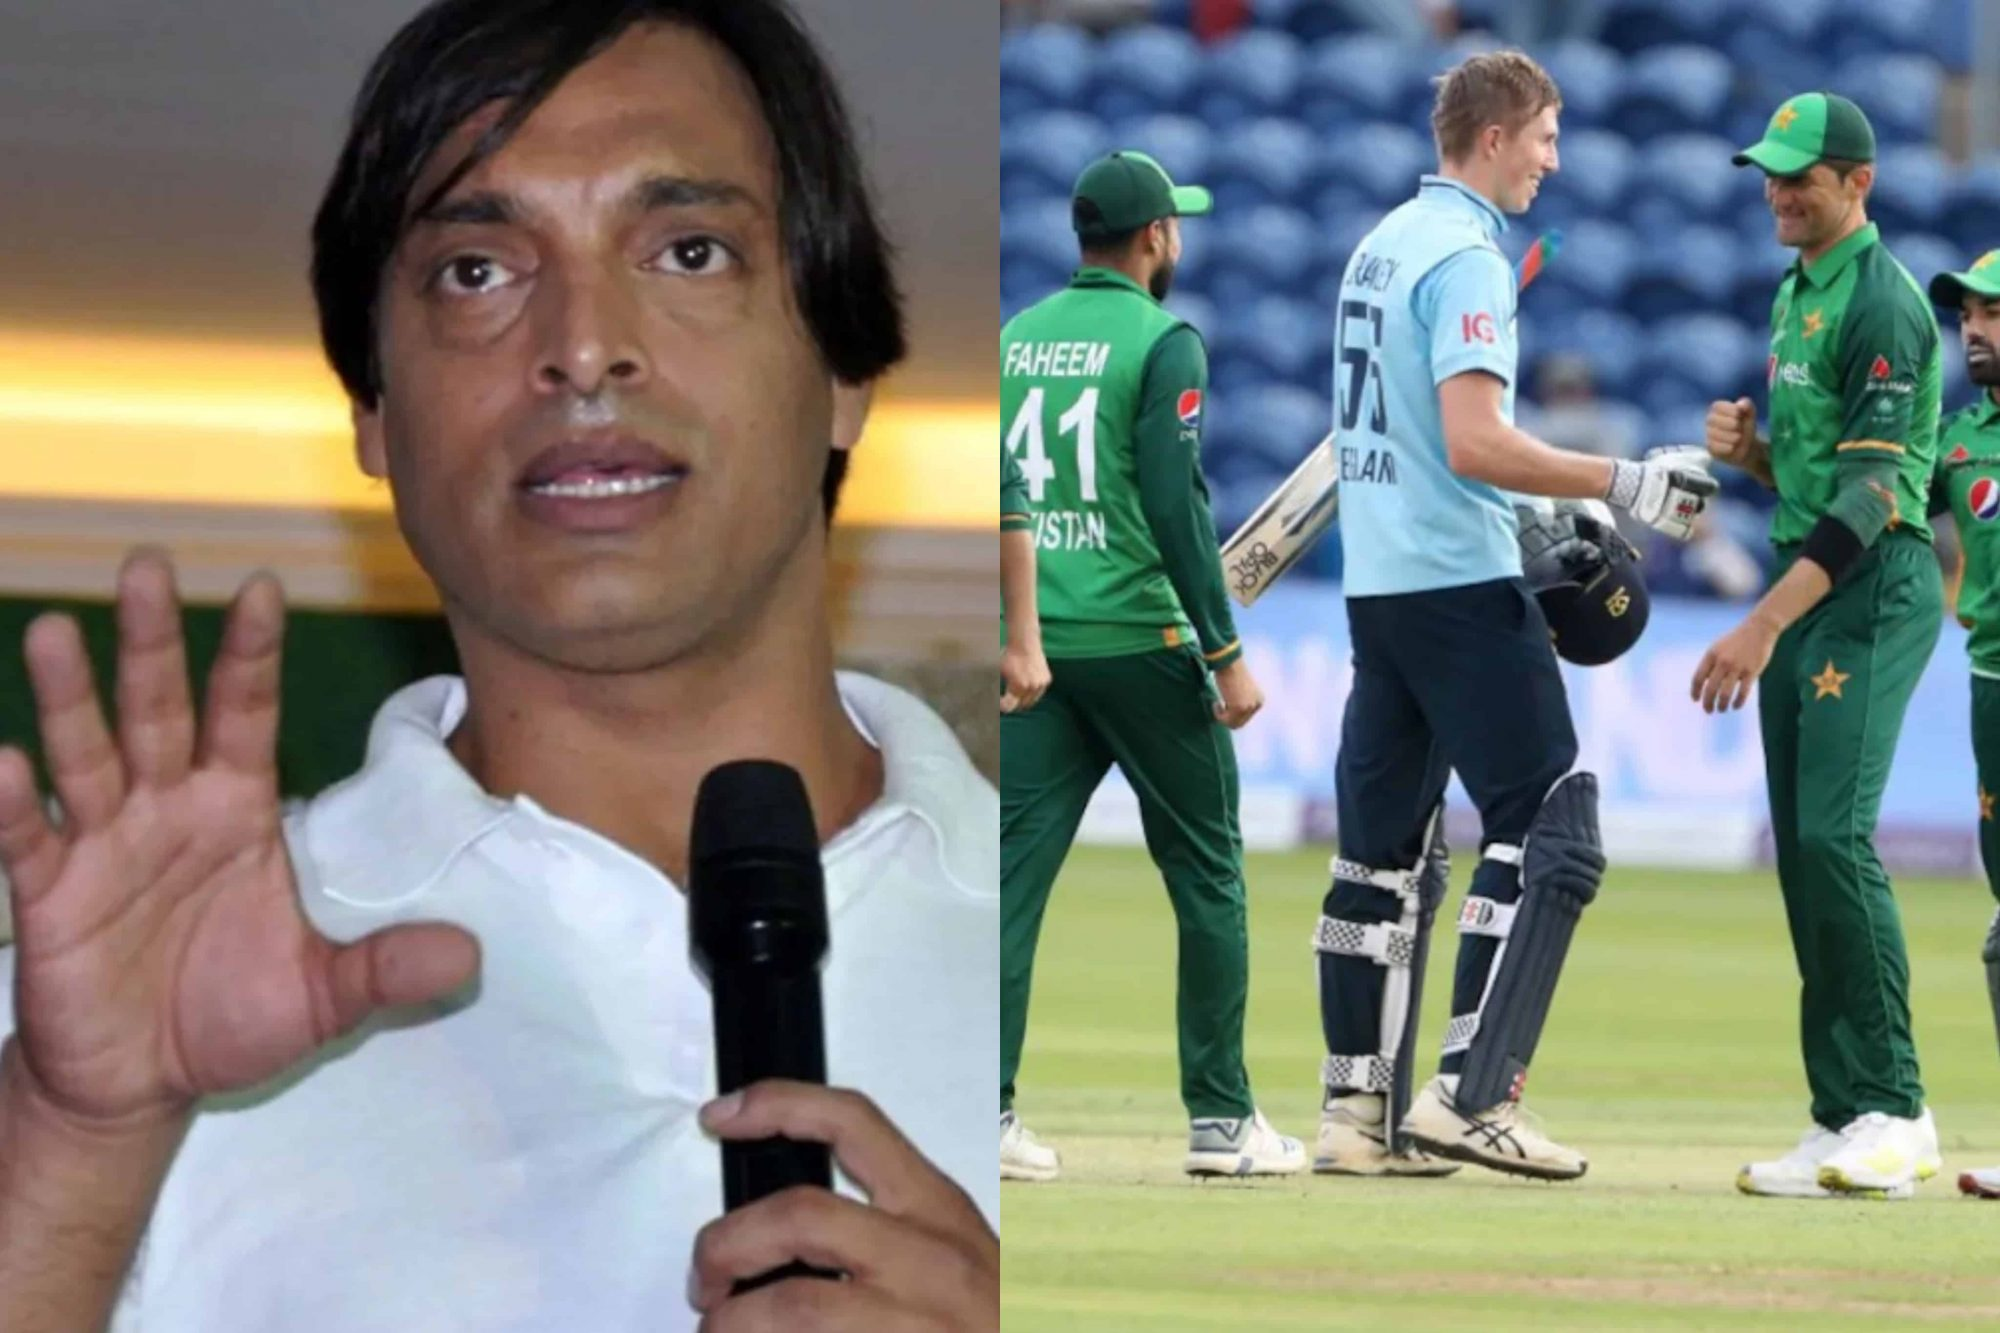 Shoaib Akhtar Lashes Out At Pakistan For Their Poor Performance Against England